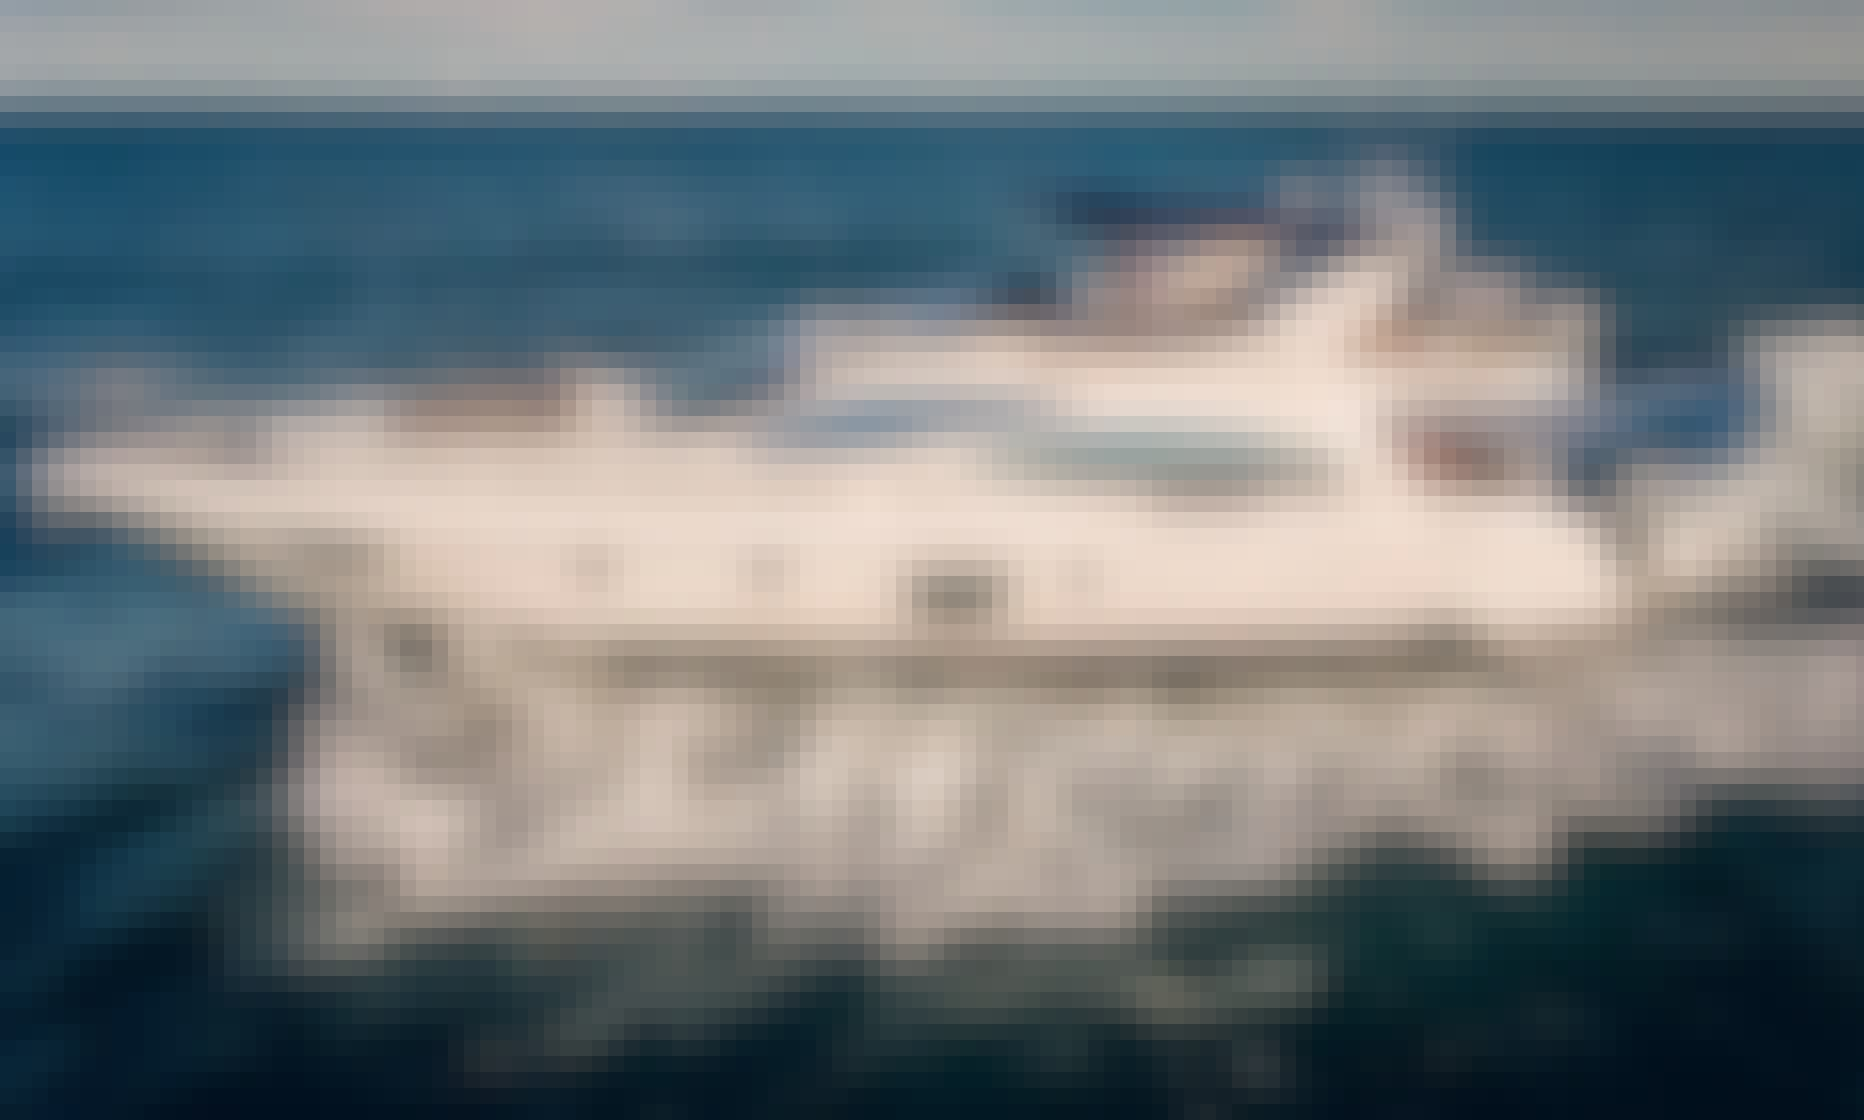 Take a Hiatus from Life on this 68' Azimut with lots of water toys to enjoy in Miami Beach, Florida